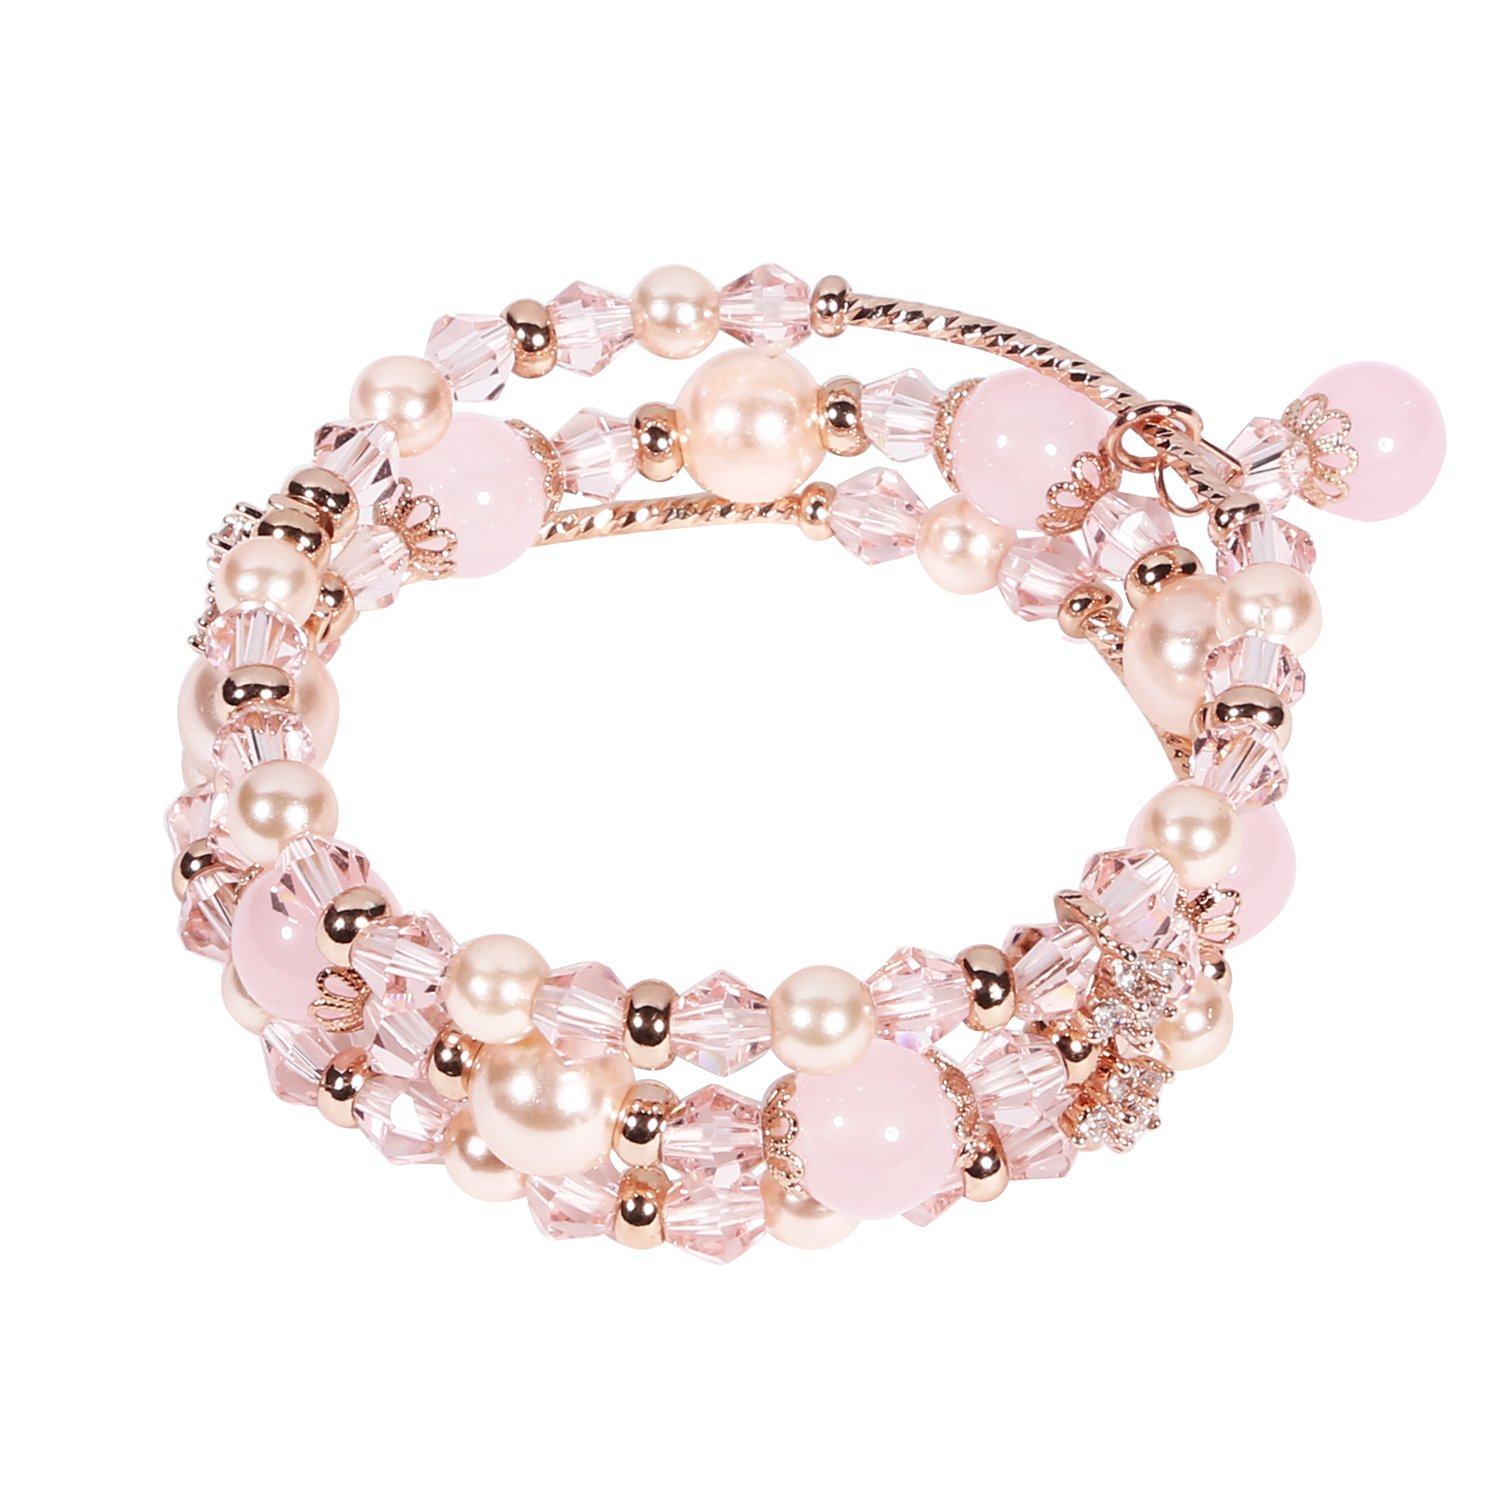 Tomazon Fashion Handmade Faux Pearl Beaded Crystals Stretch Elastic Wrap Around Wrist Bracelet Bangles for Women Girls (3 Rows - Pink)